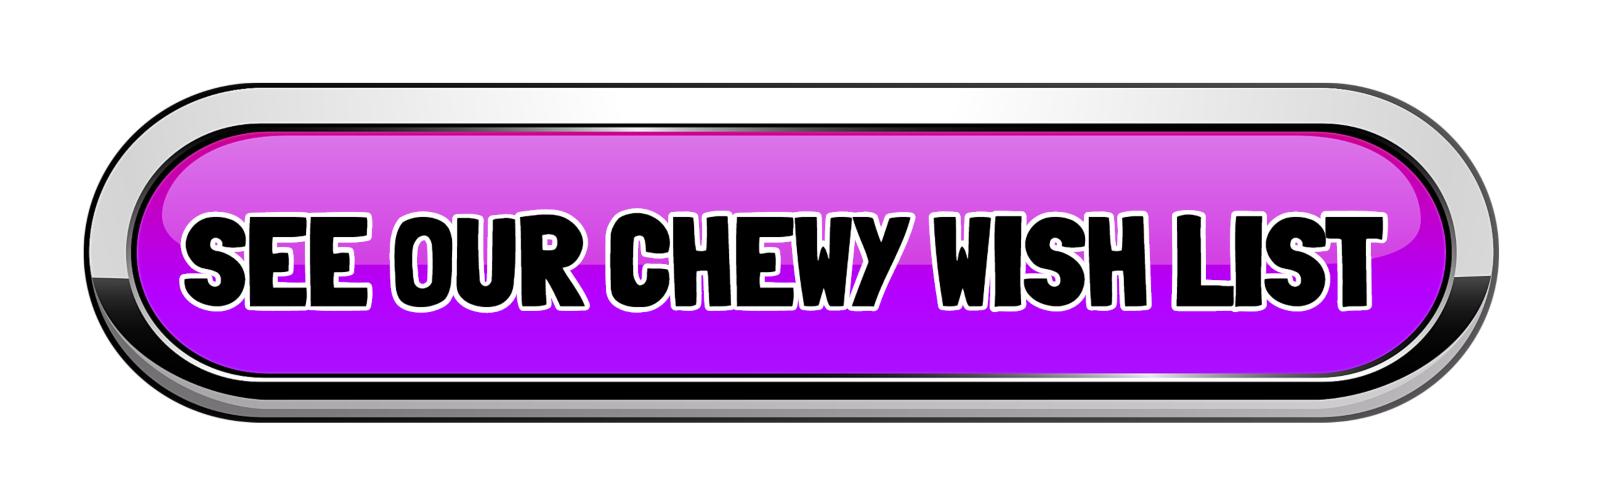 chewy button1